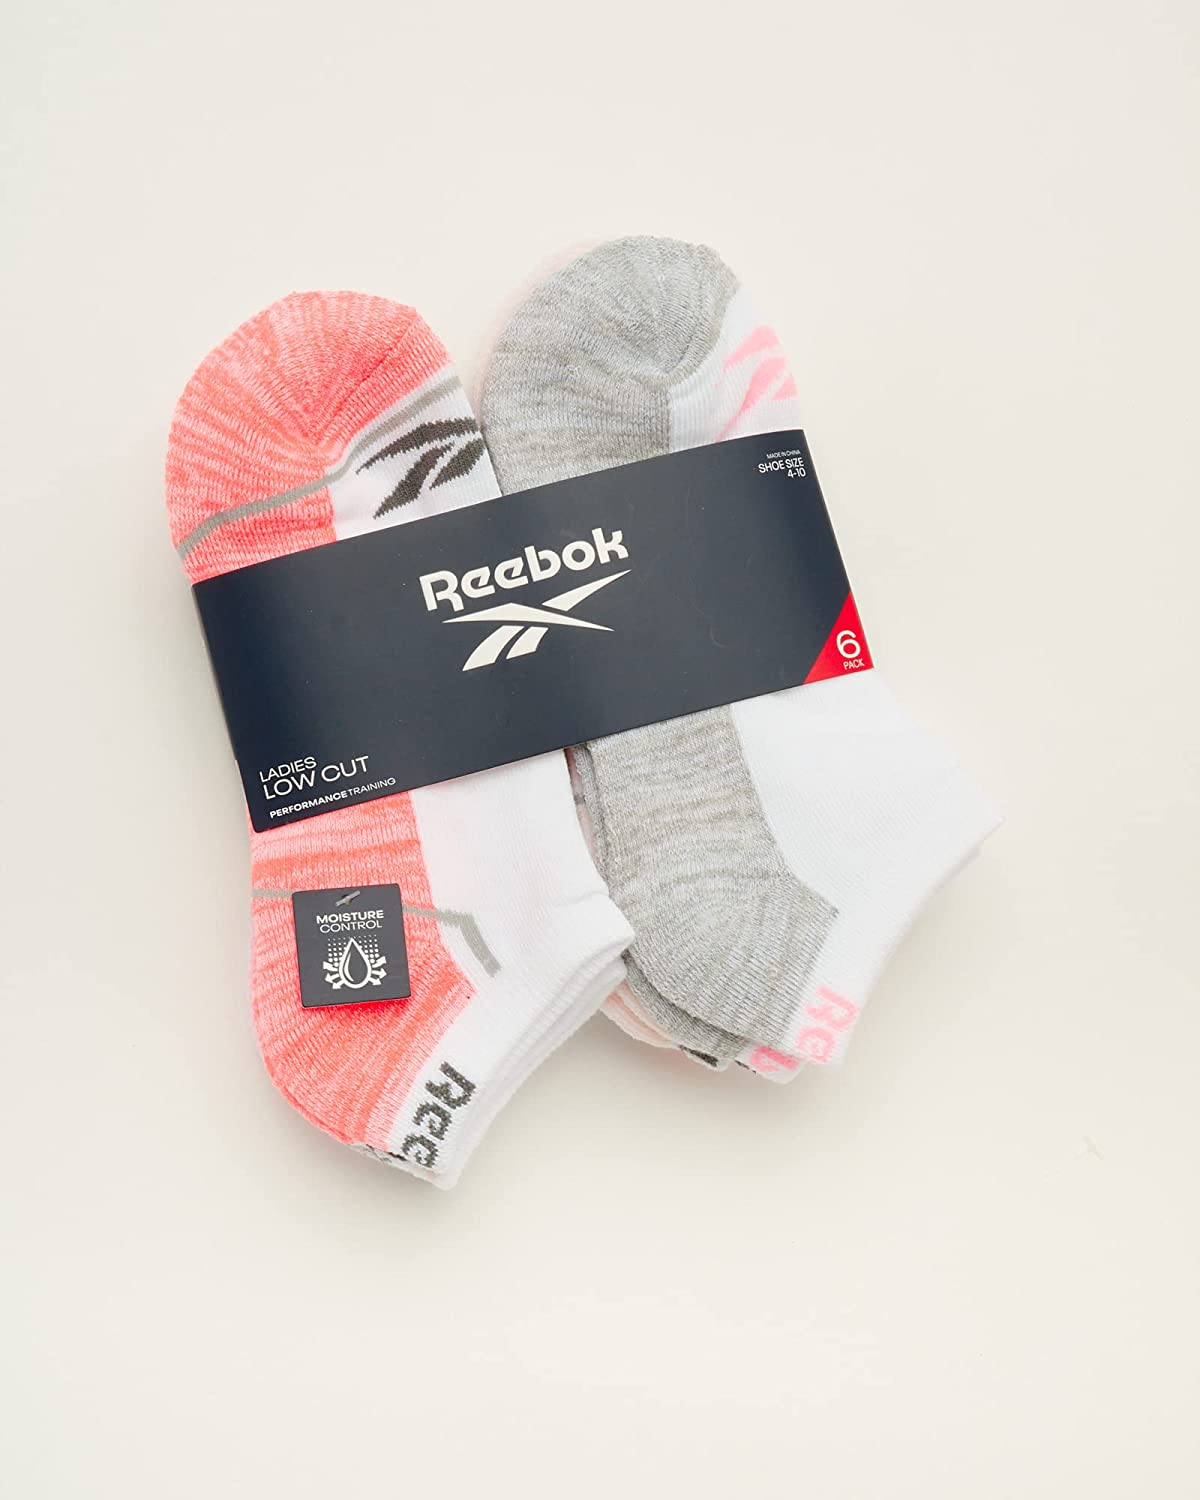 Reebok Women's No-Show Athletic Performance Low Cut Cushioned Socks (6 Pack)